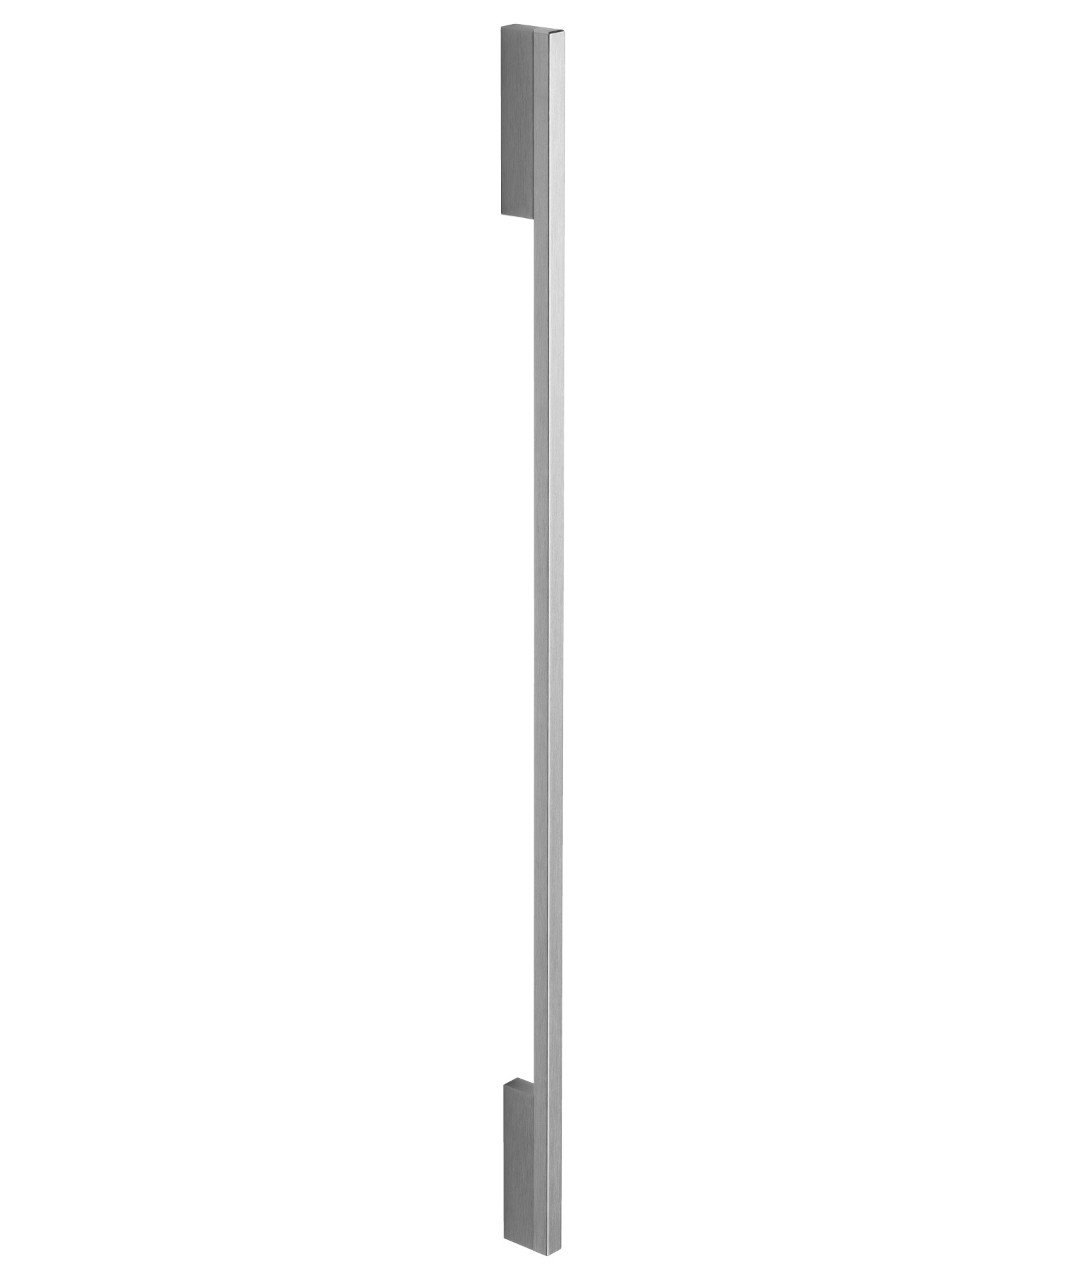 Fisher and Paykel Contemporary Square Handle Kit for Integrated Column Refrigerator or Freezer, All widths